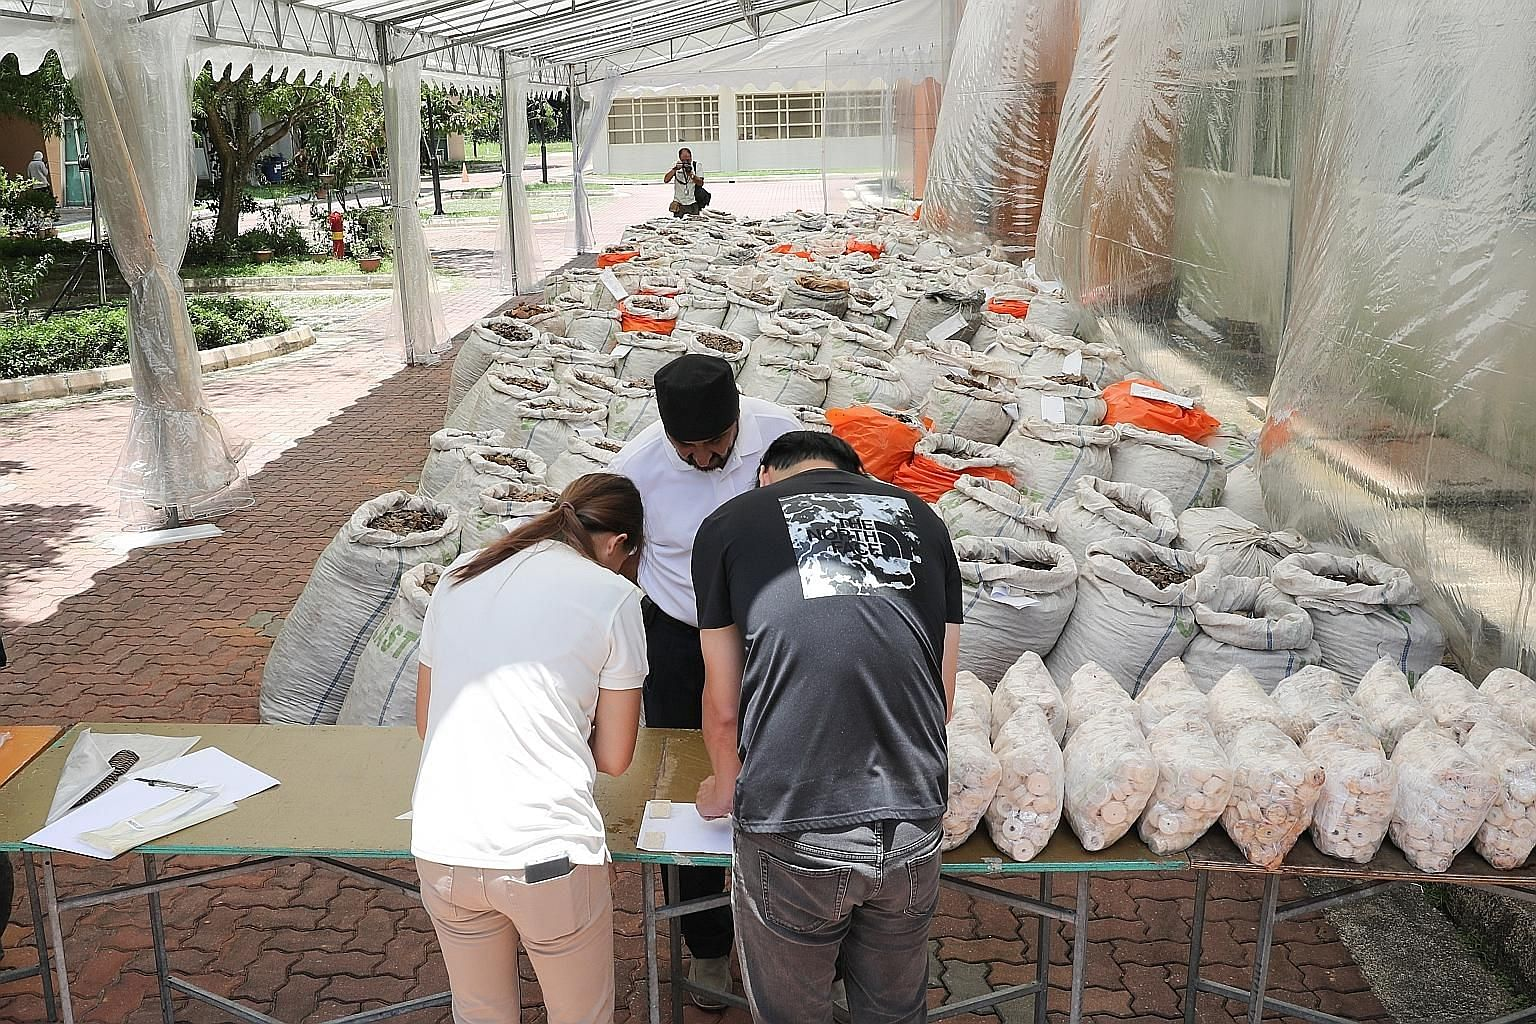 The shipment originated from Nigeria and was bound for Vietnam. A joint operation by Singapore Customs and the National Parks Board found the scales in 230 bags inside a 40ft shipping container (above), along with 177kg of elephant ivory worth $120,0